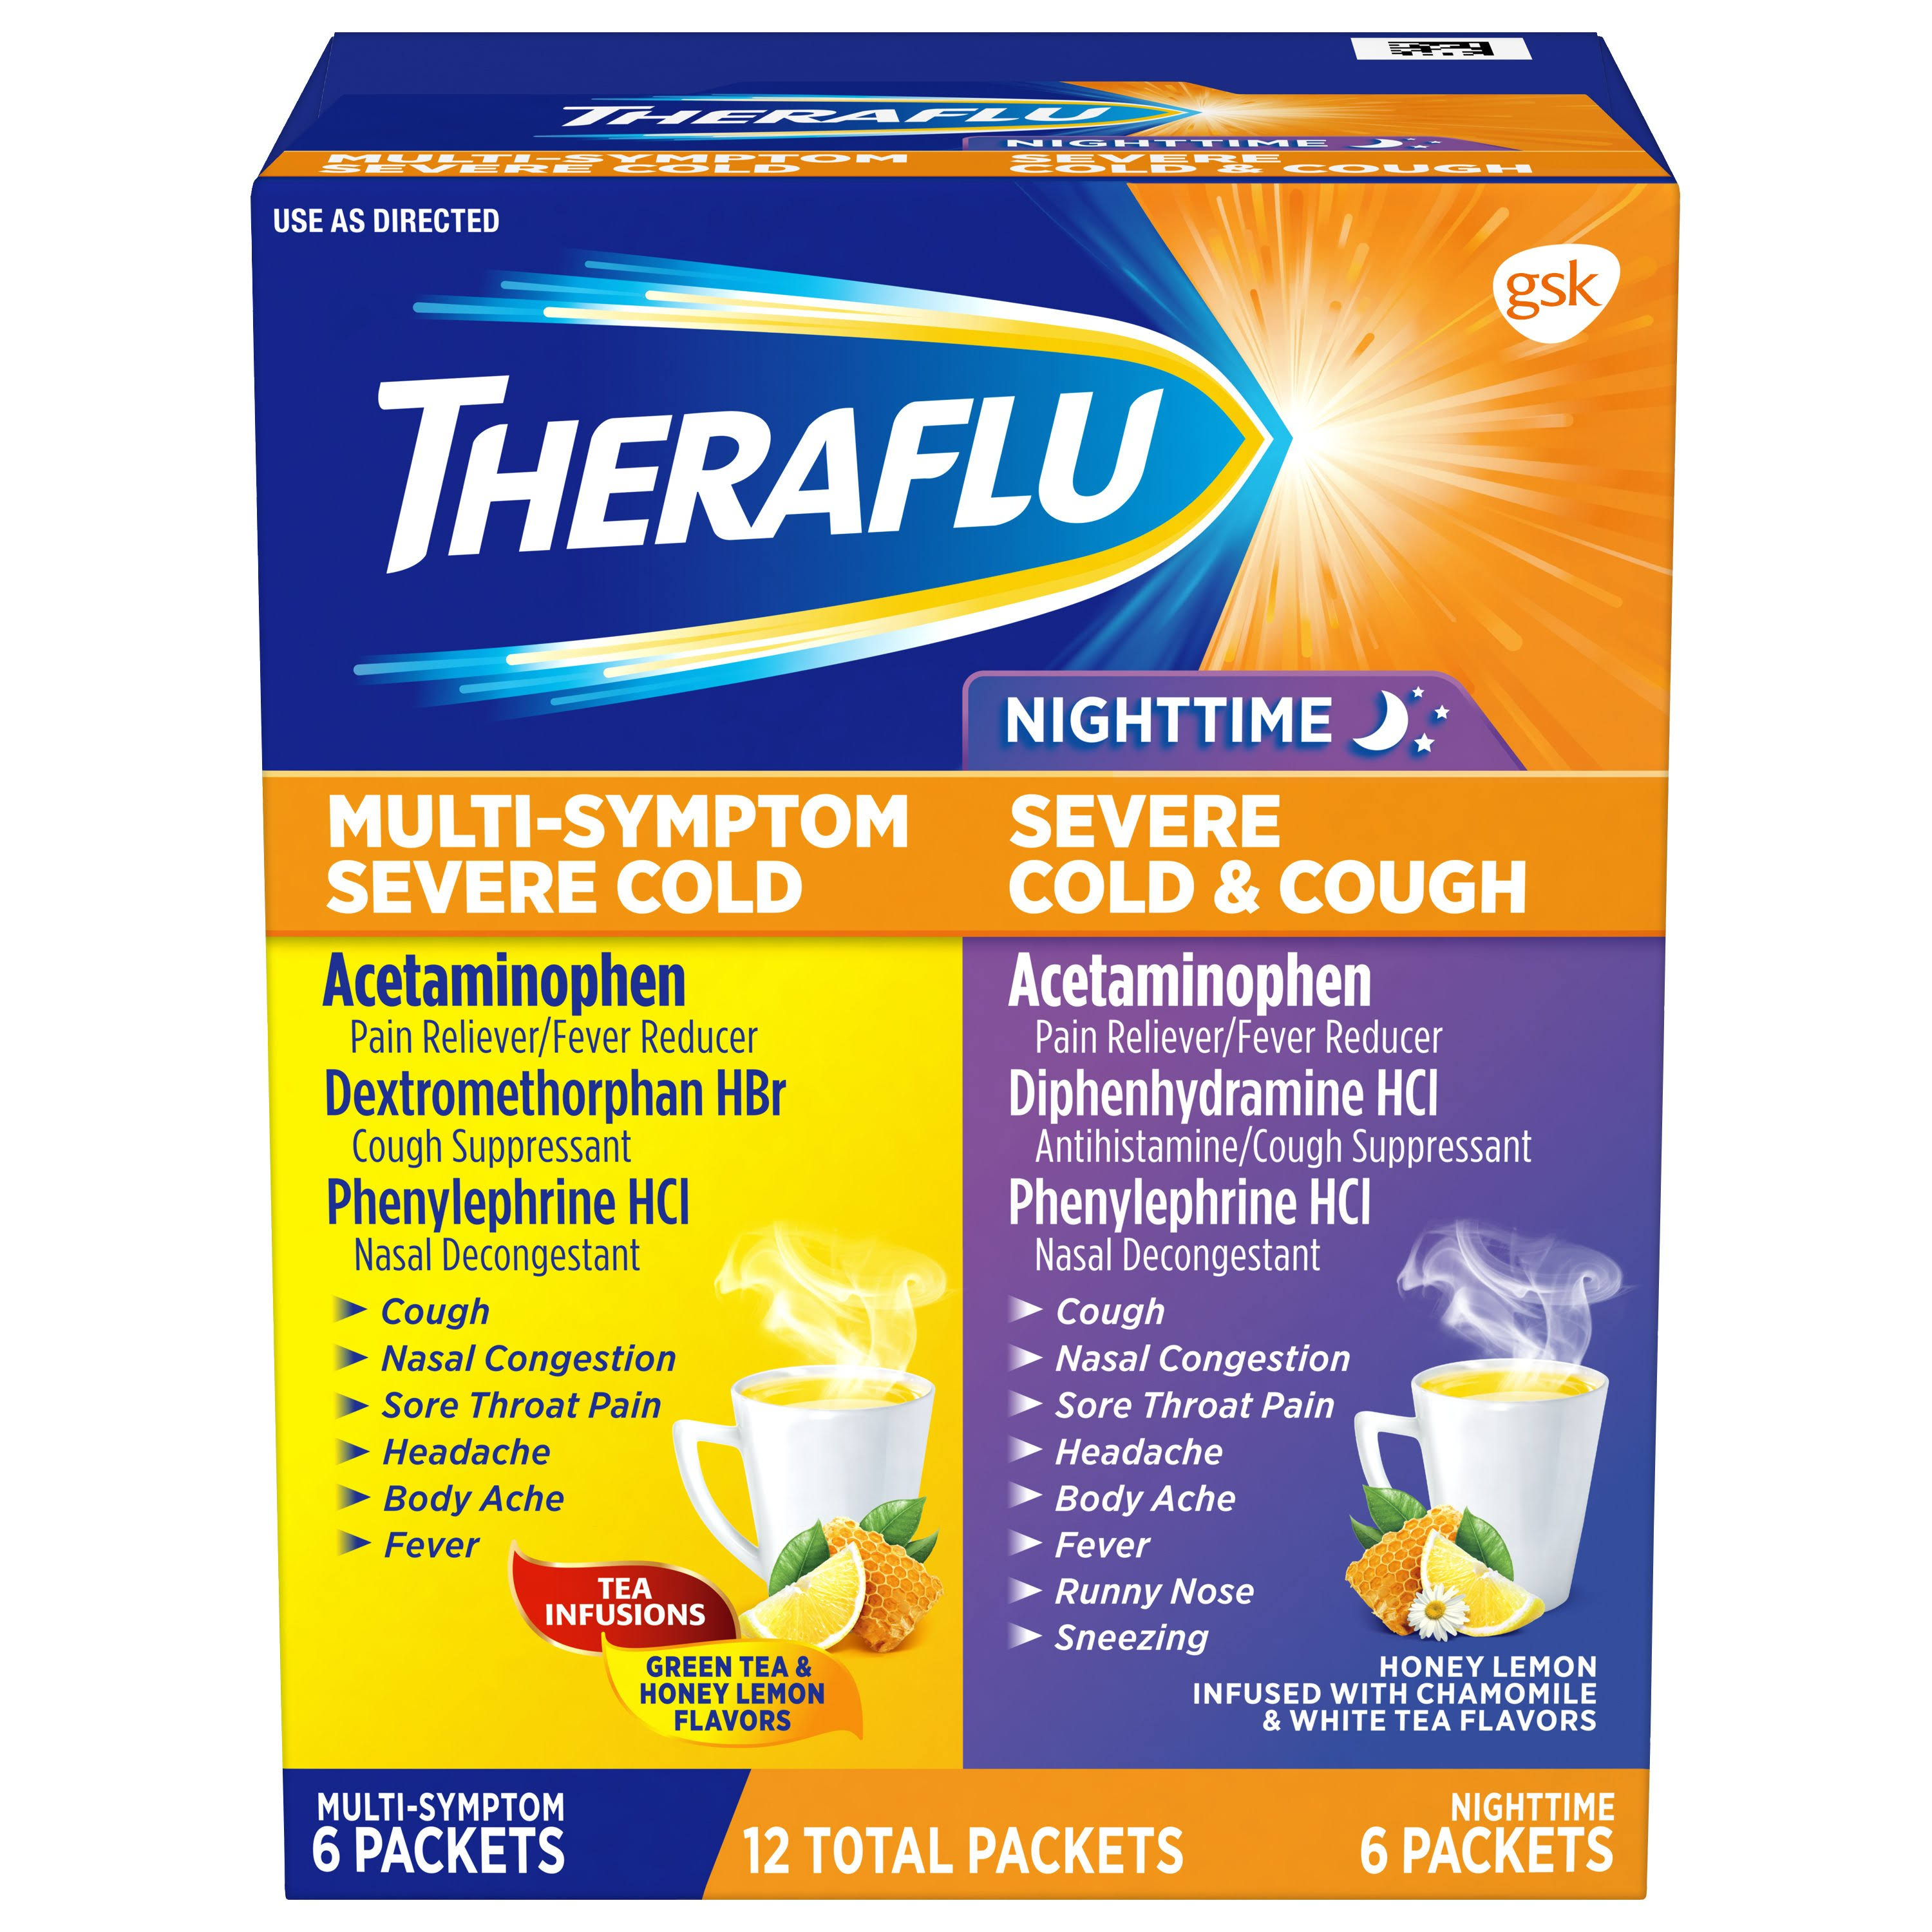 Theraflu Night Time & Multi Symptom Severe Cold and Cough Relief - 12 Packet